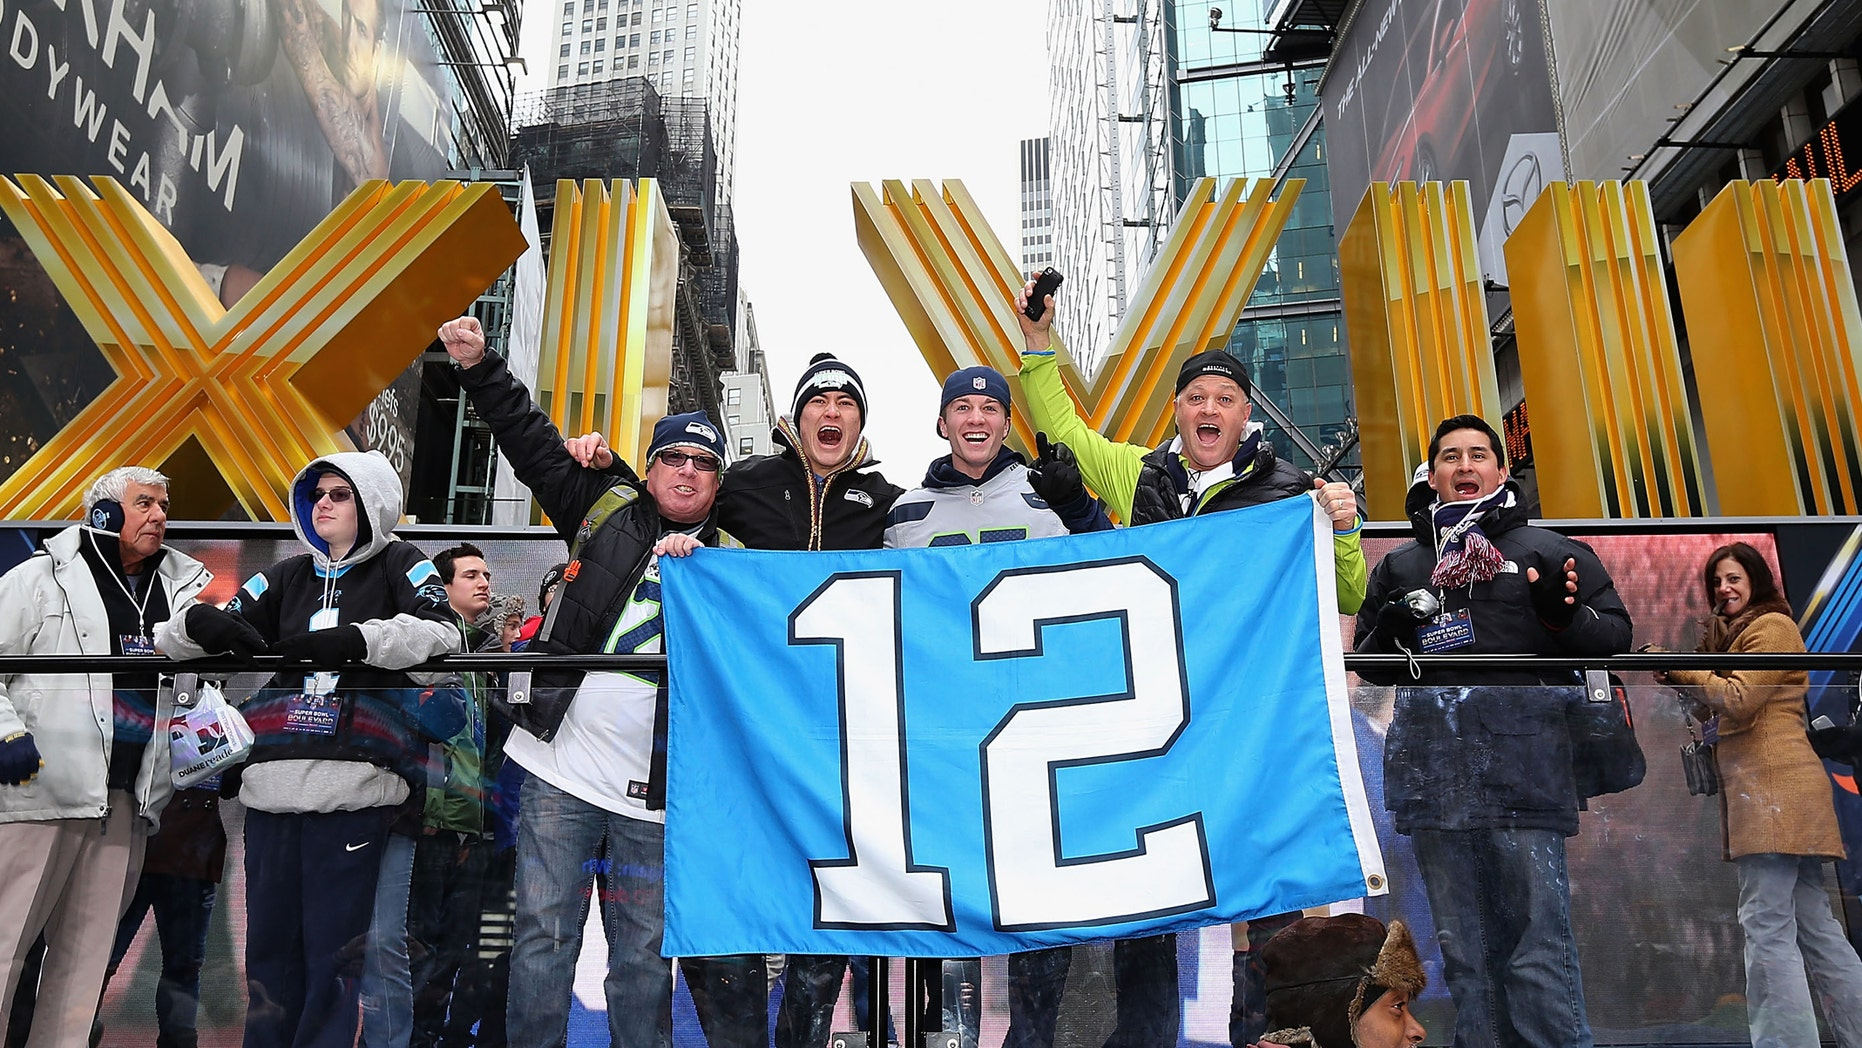 Seattle Seahawks on January 31, 2014 in New York City.